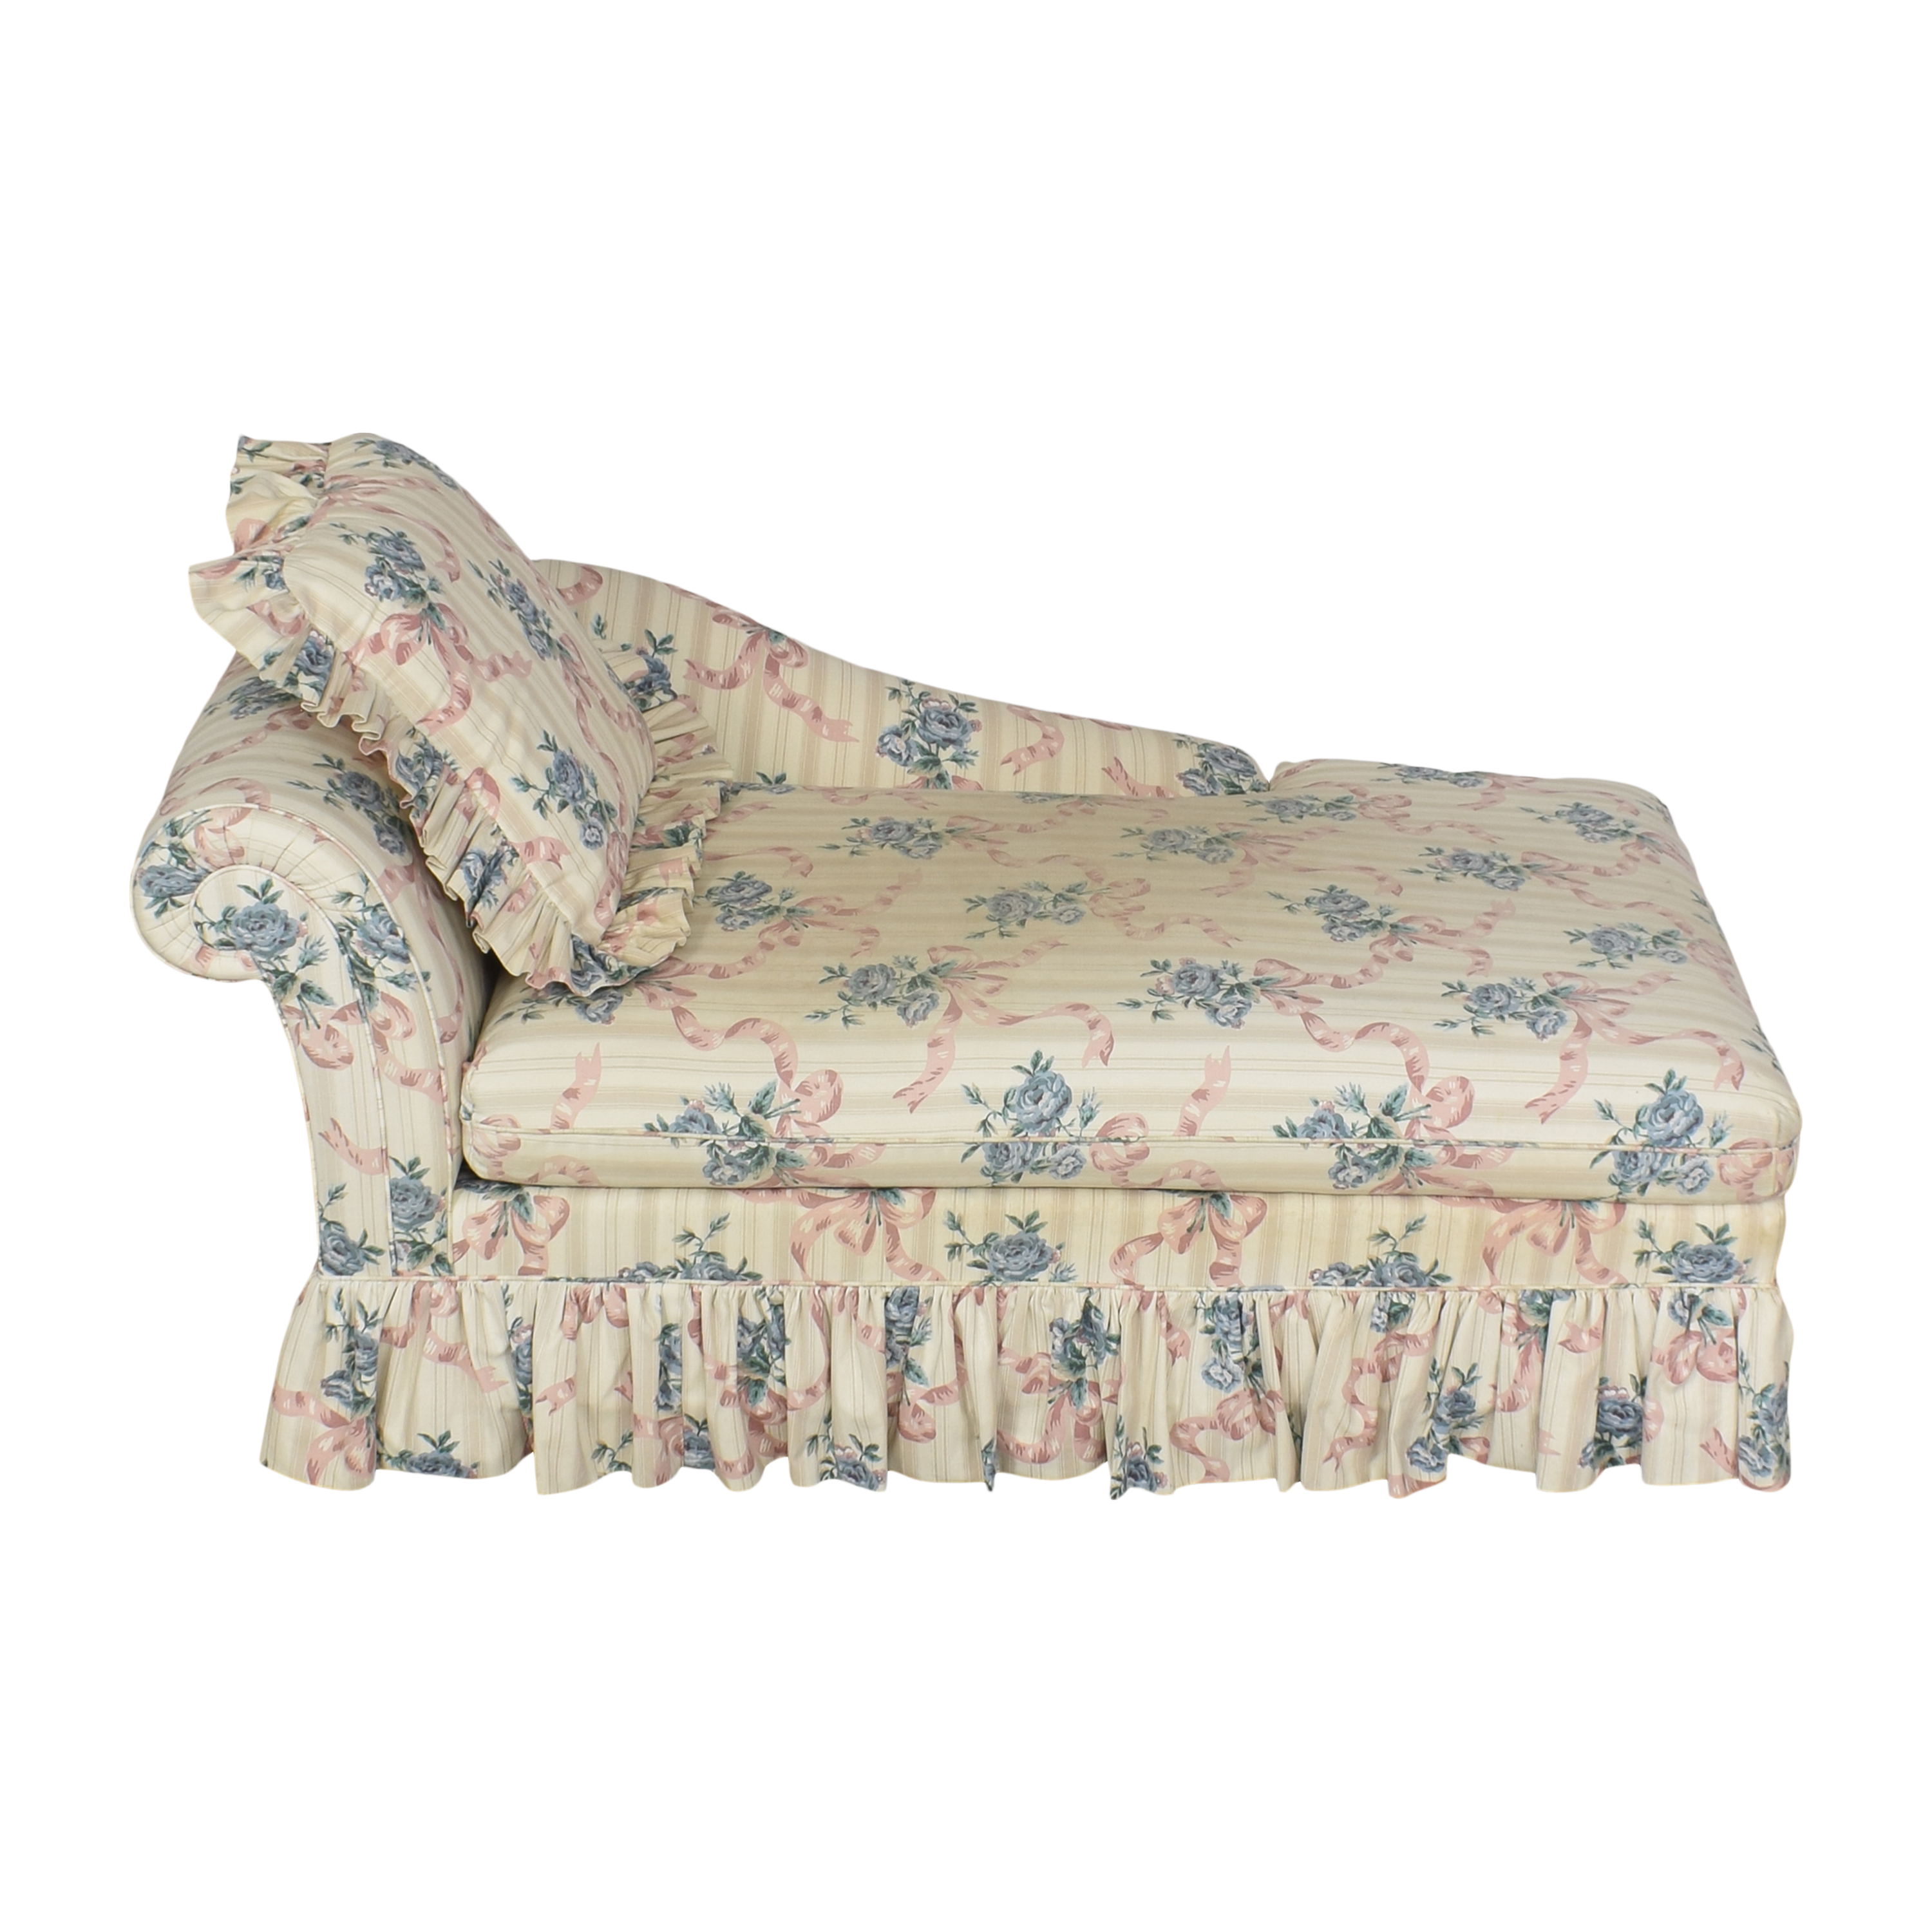 Ethan Allen Traditional Classics Chaise Lounge / Sofas